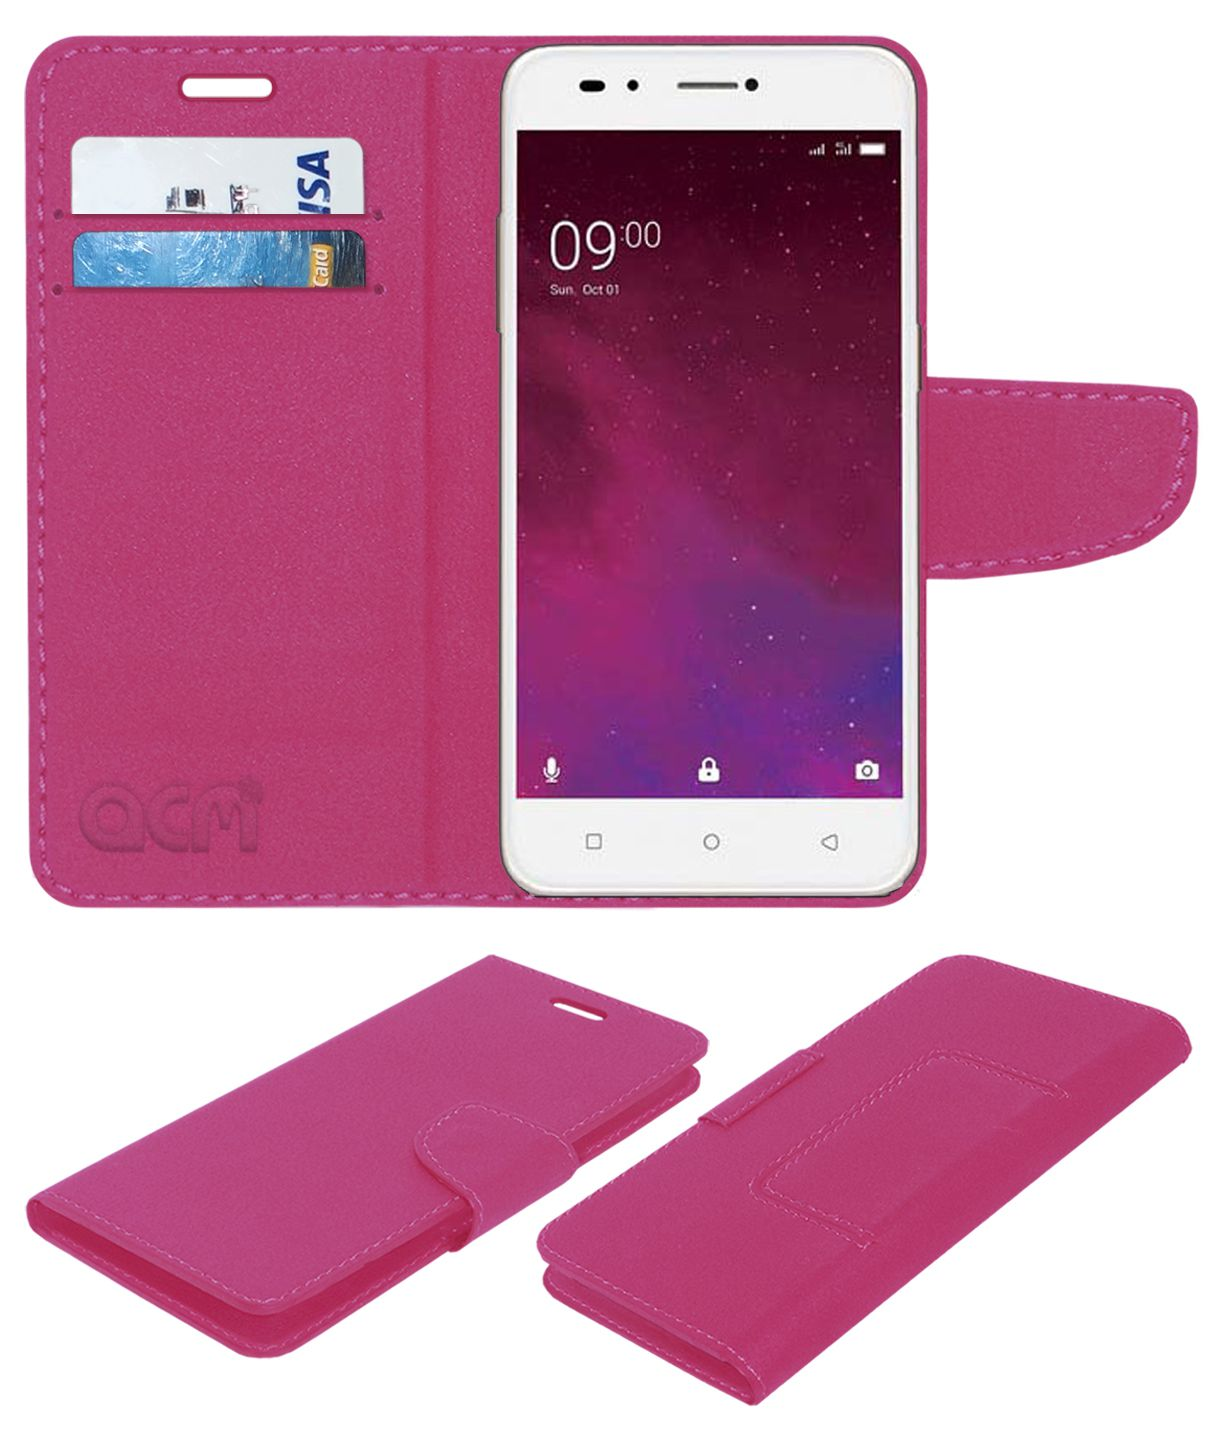 new concept 48fa8 bfb4c Lava Z60 Flip Cover by ACM - Pink